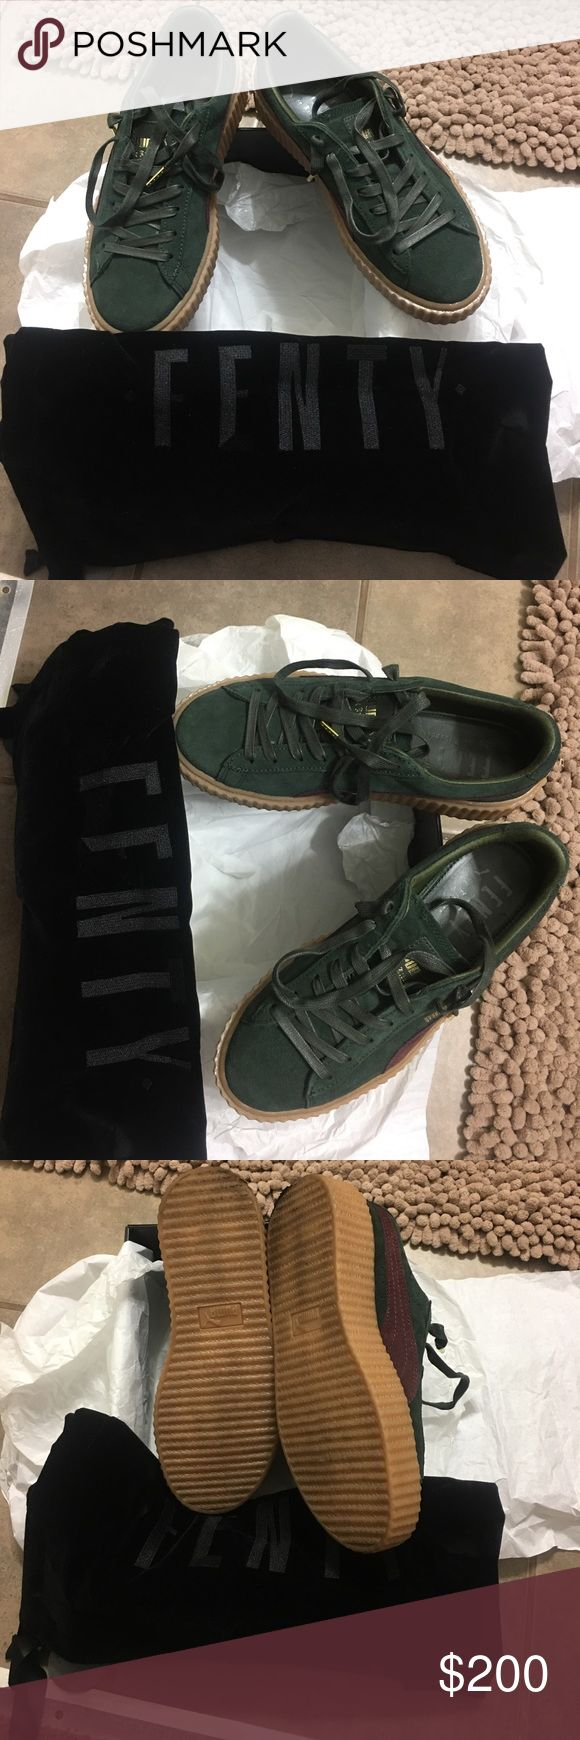 Puma Suede Creepers by Rihanna Rihanna Suede Creepers price is firm no trades only wore once. Receipt available Puma Shoes Athletic Shoes